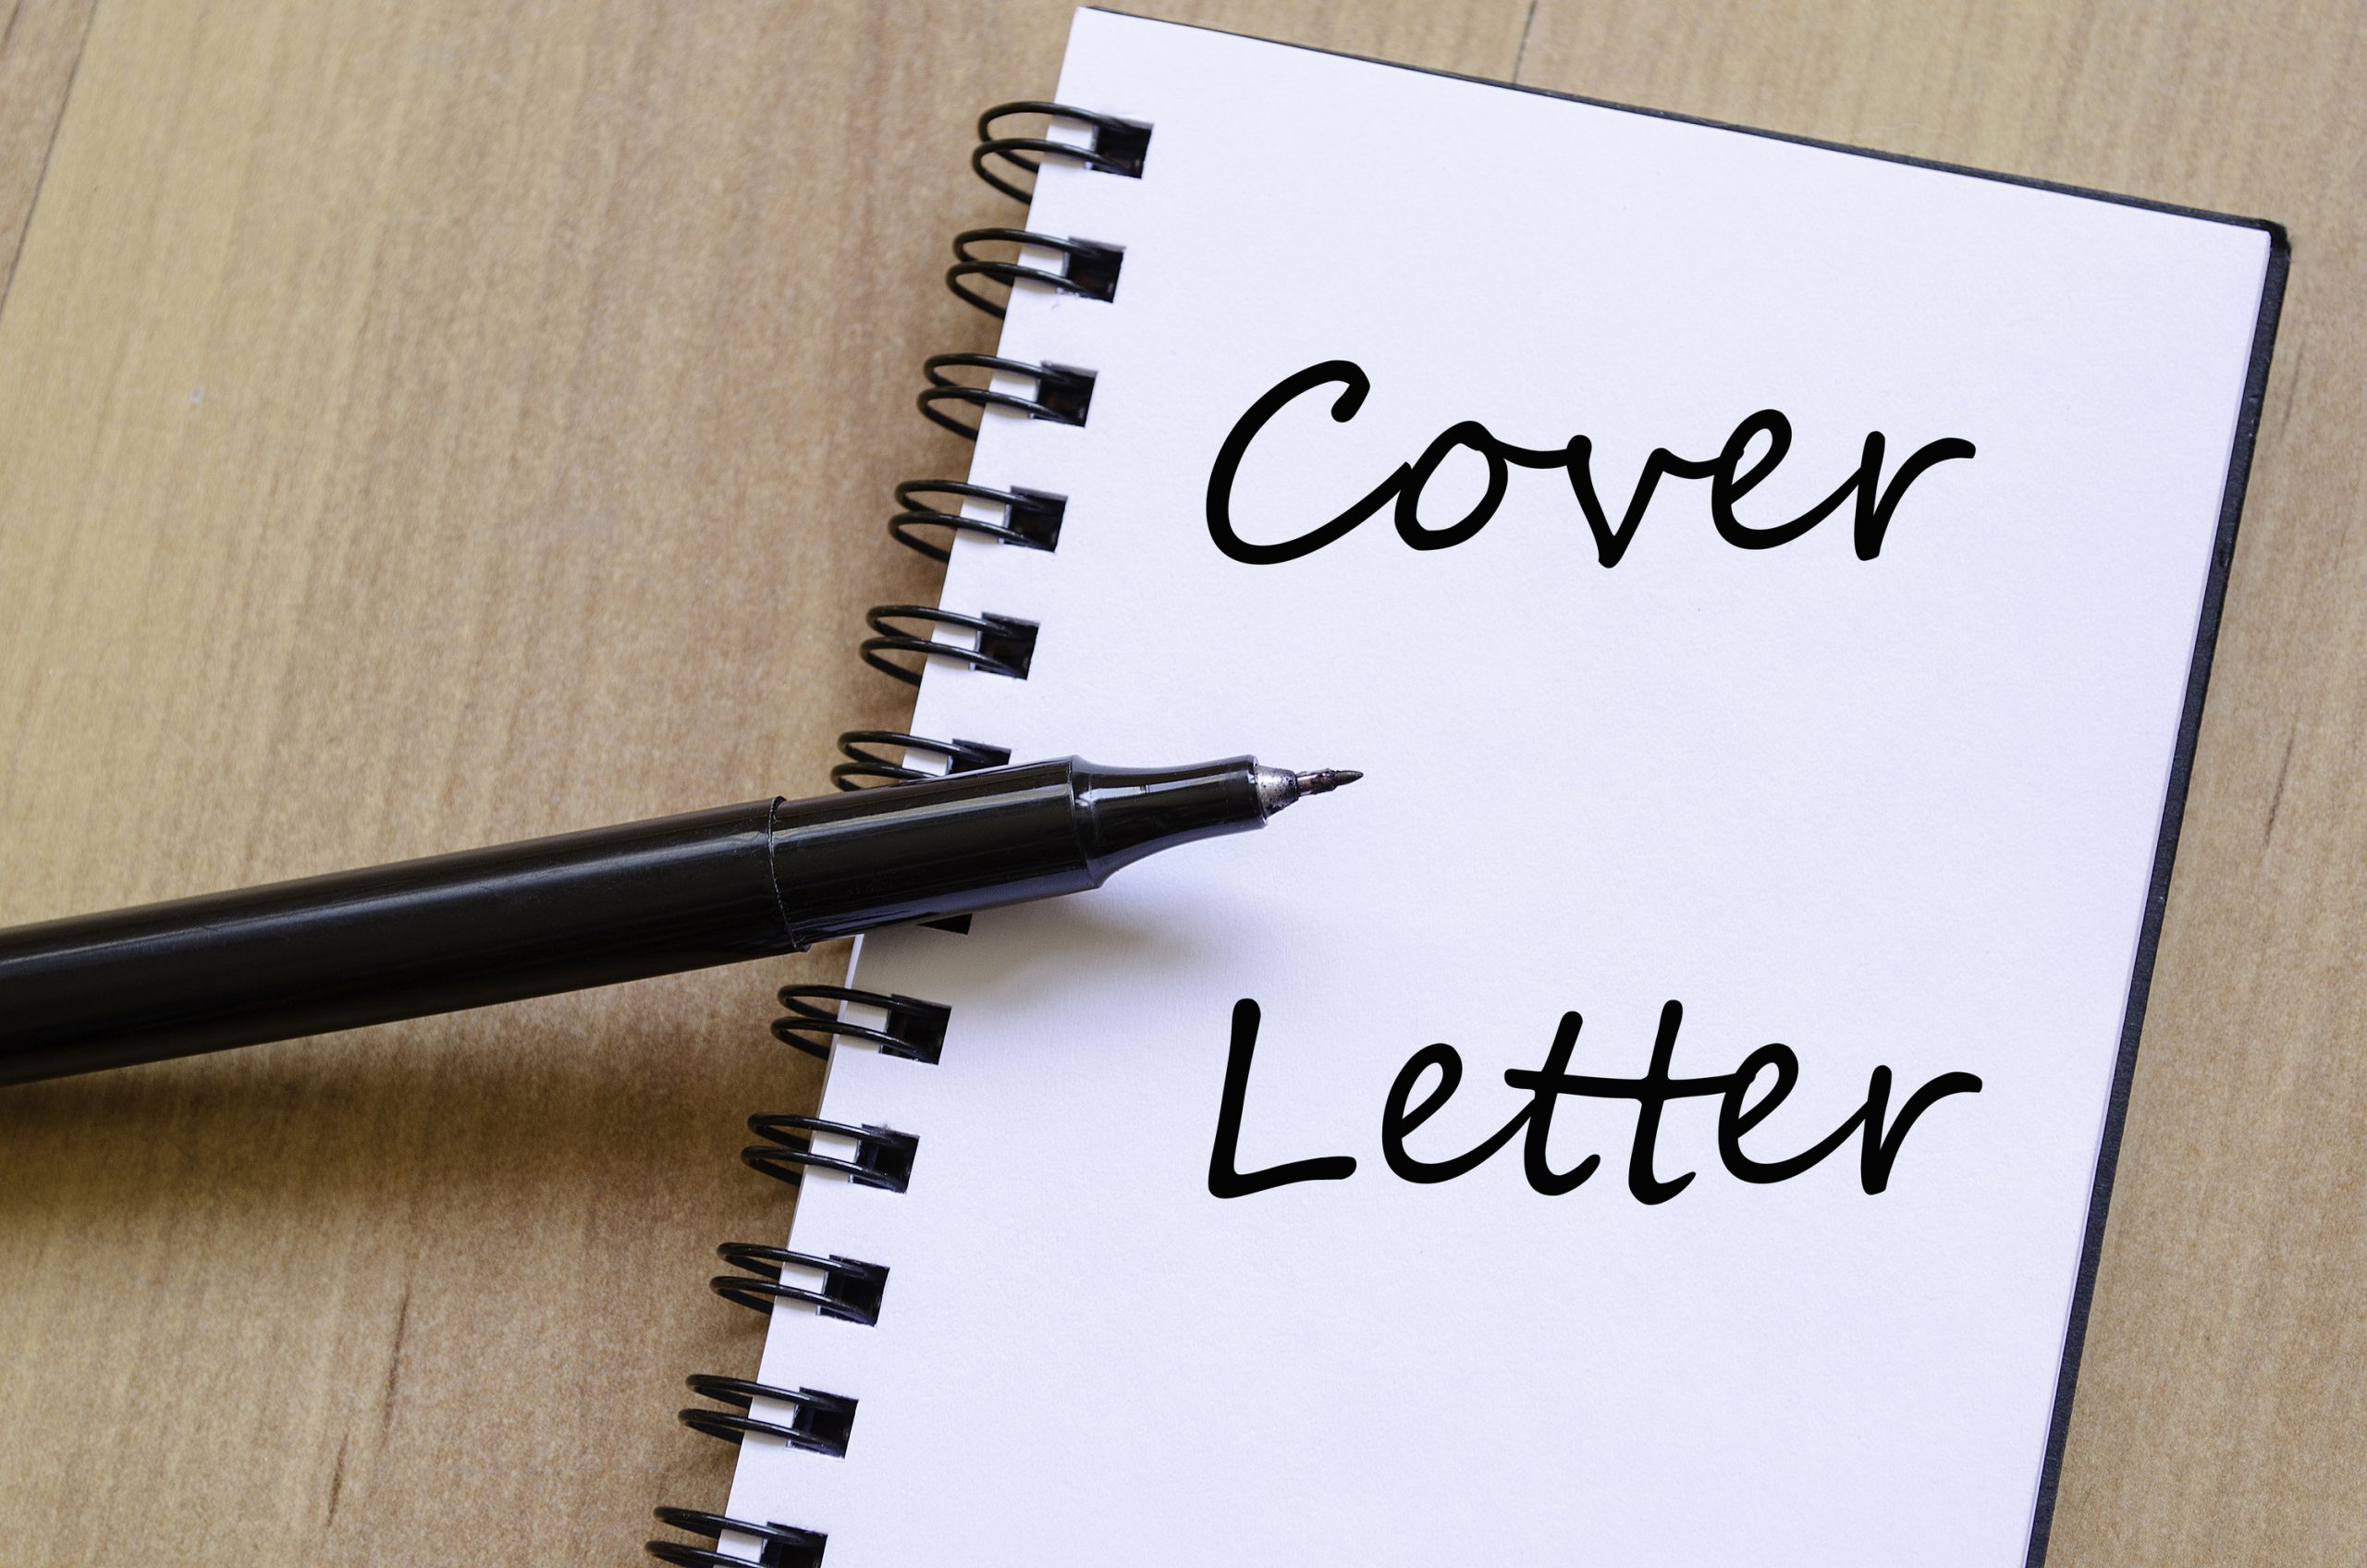 Fllow this guide to make sure your cover letter is the best it can be!